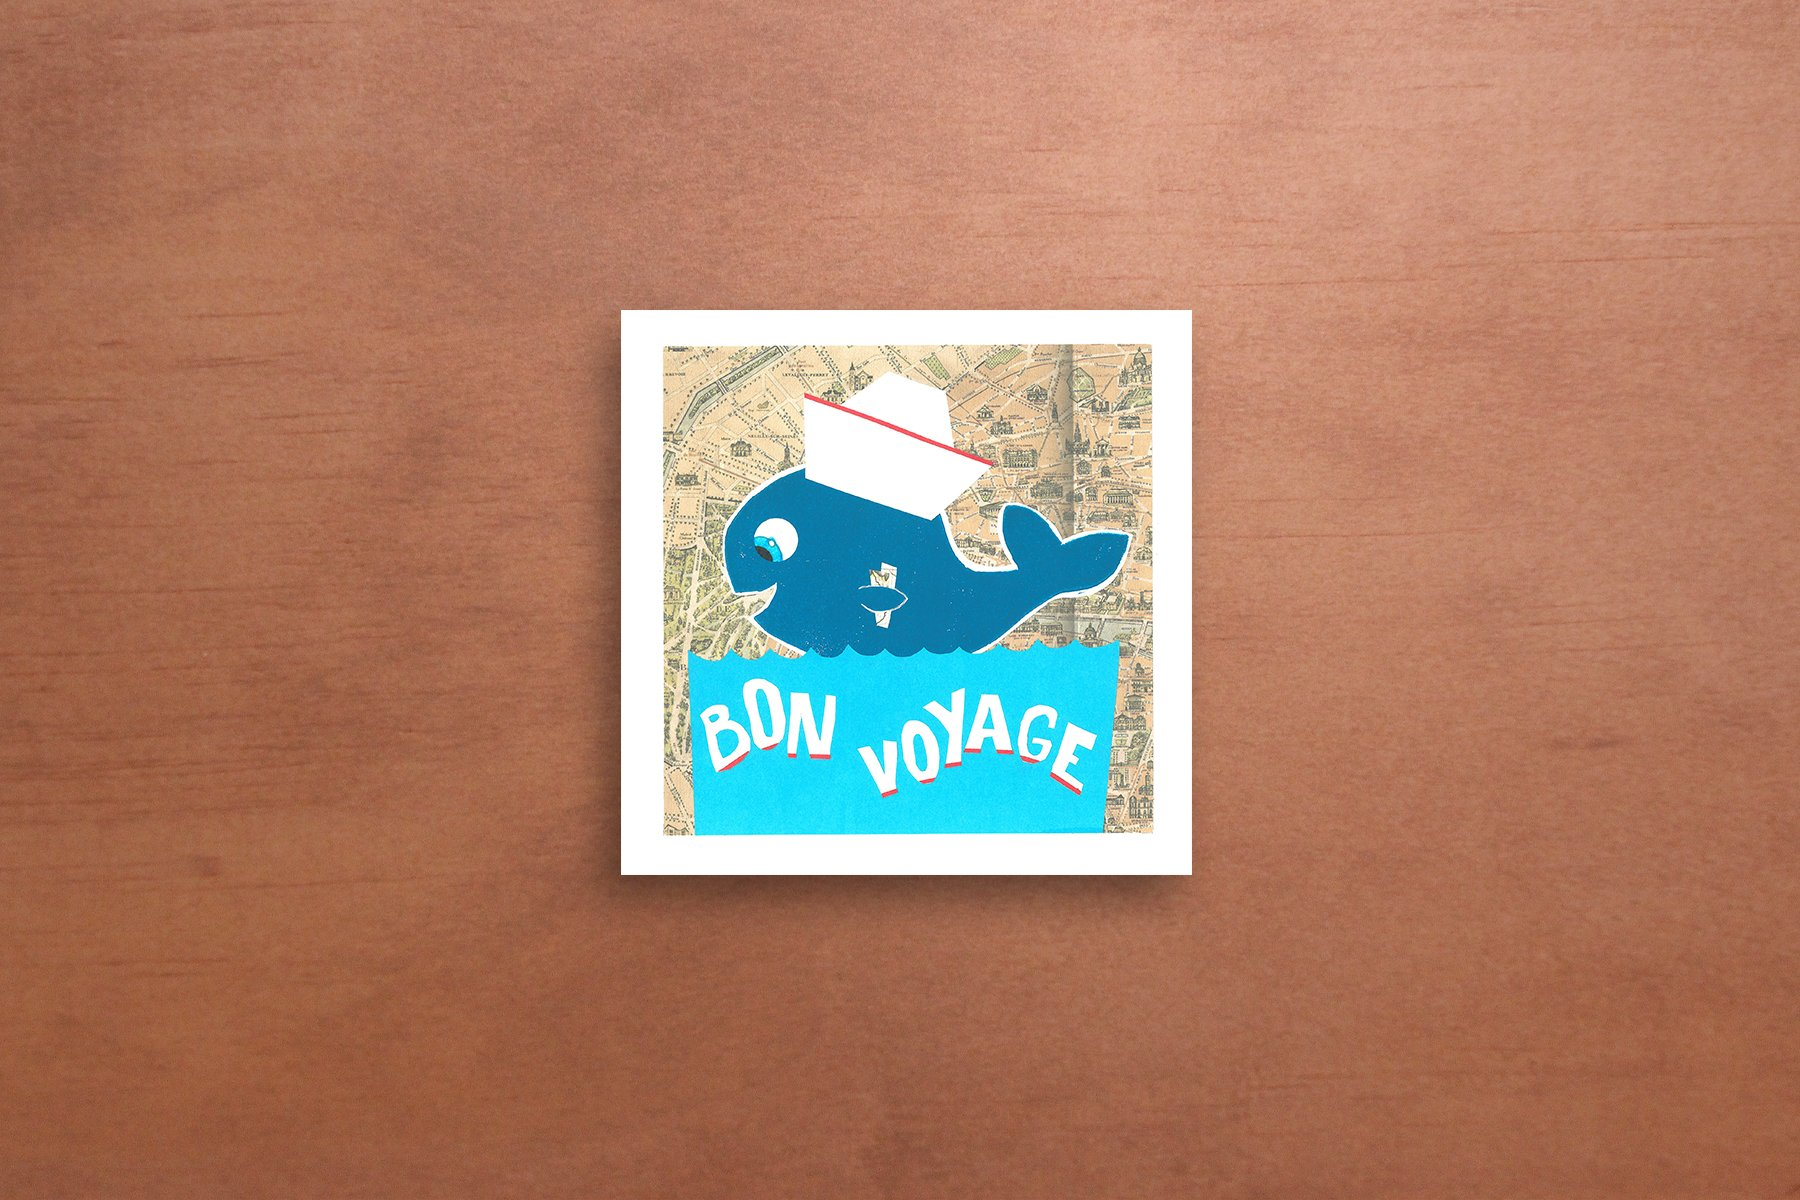 Bon voyage greeting card alvin design thanks for visiting kristyandbryce Image collections